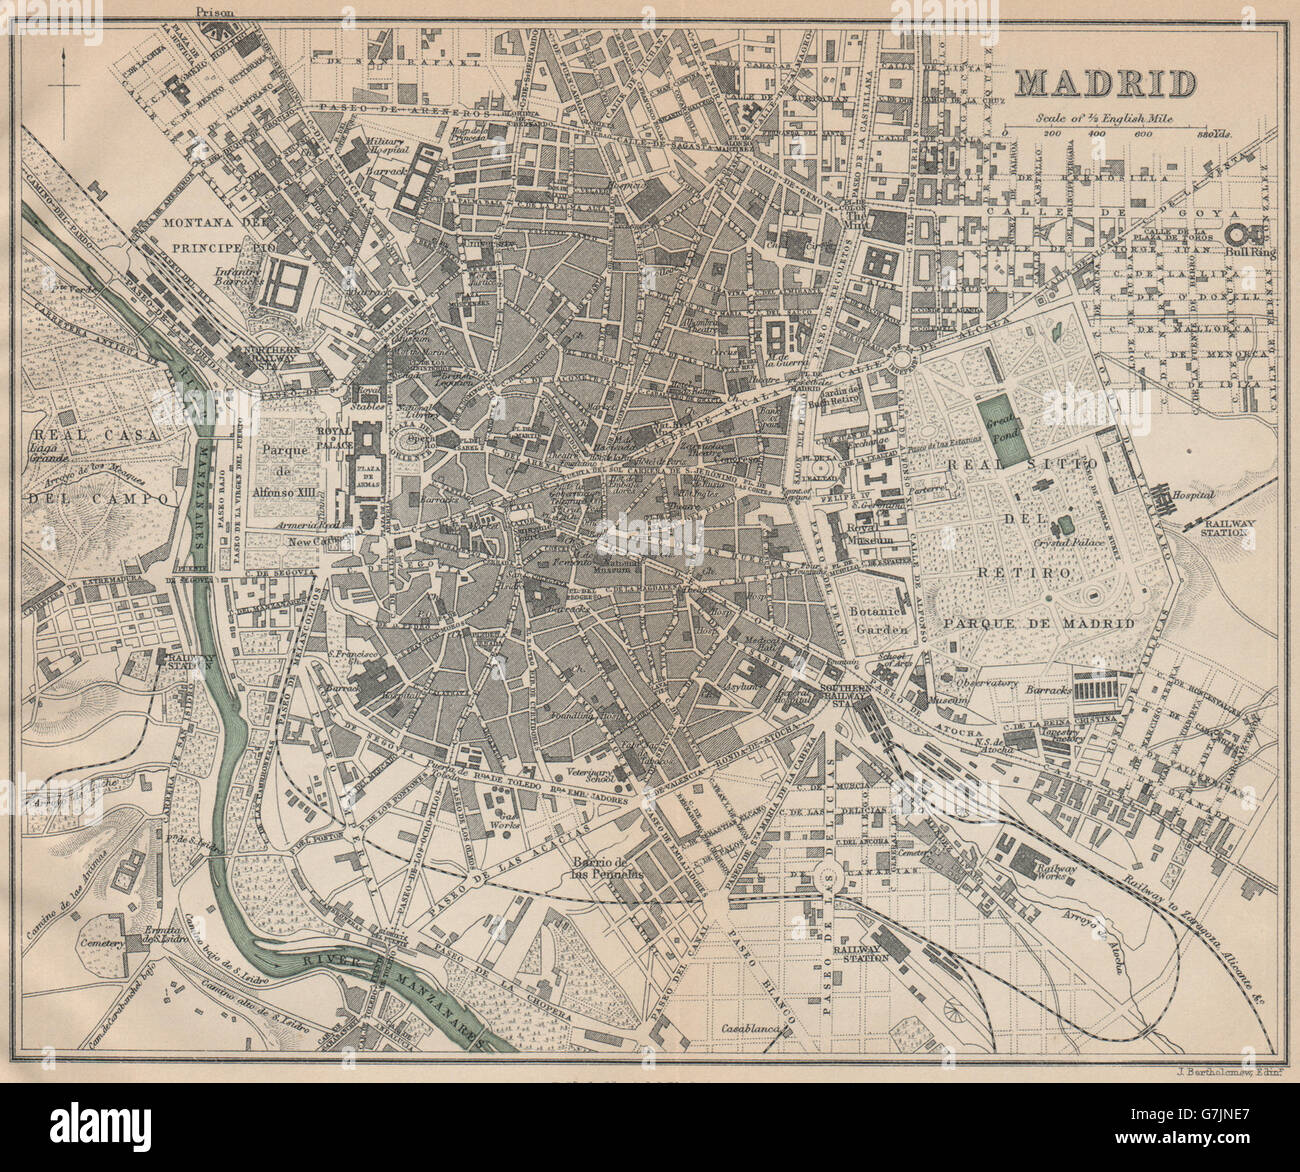 MADRID Vintage town city map plan Spain 1899 Stock Photo